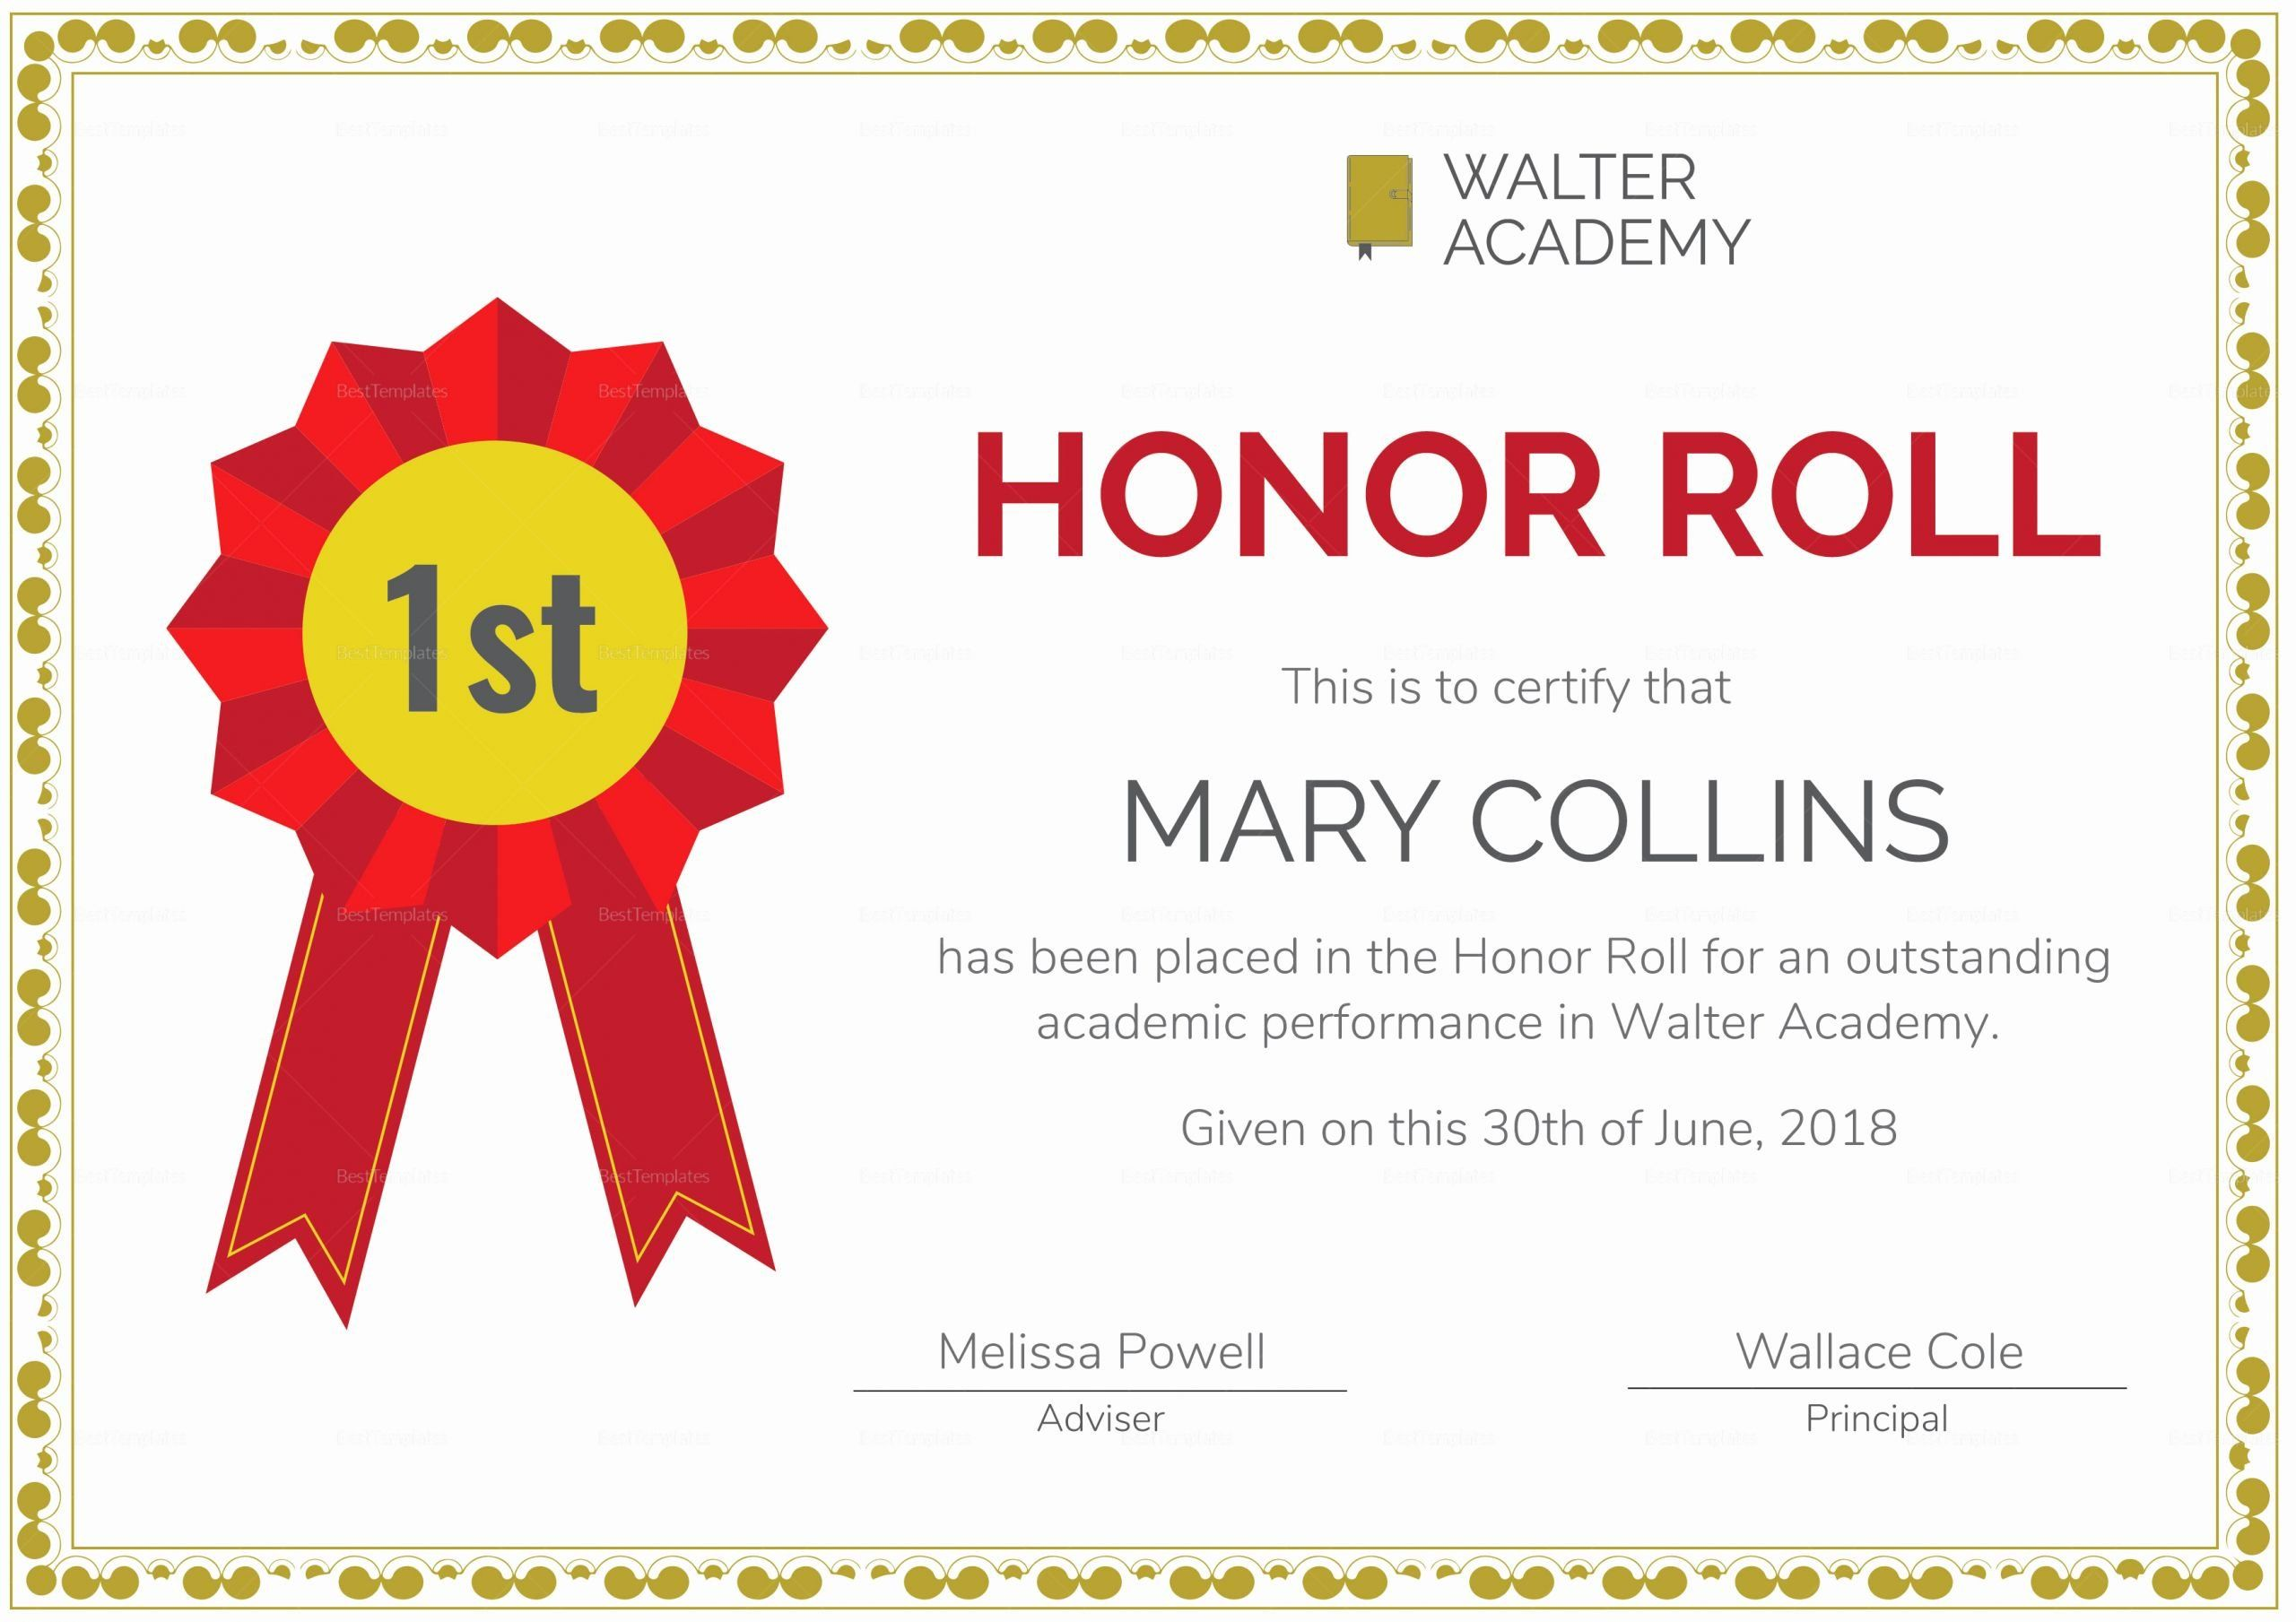 Honor Roll Certificate Template Free Beautiful Honor Roll